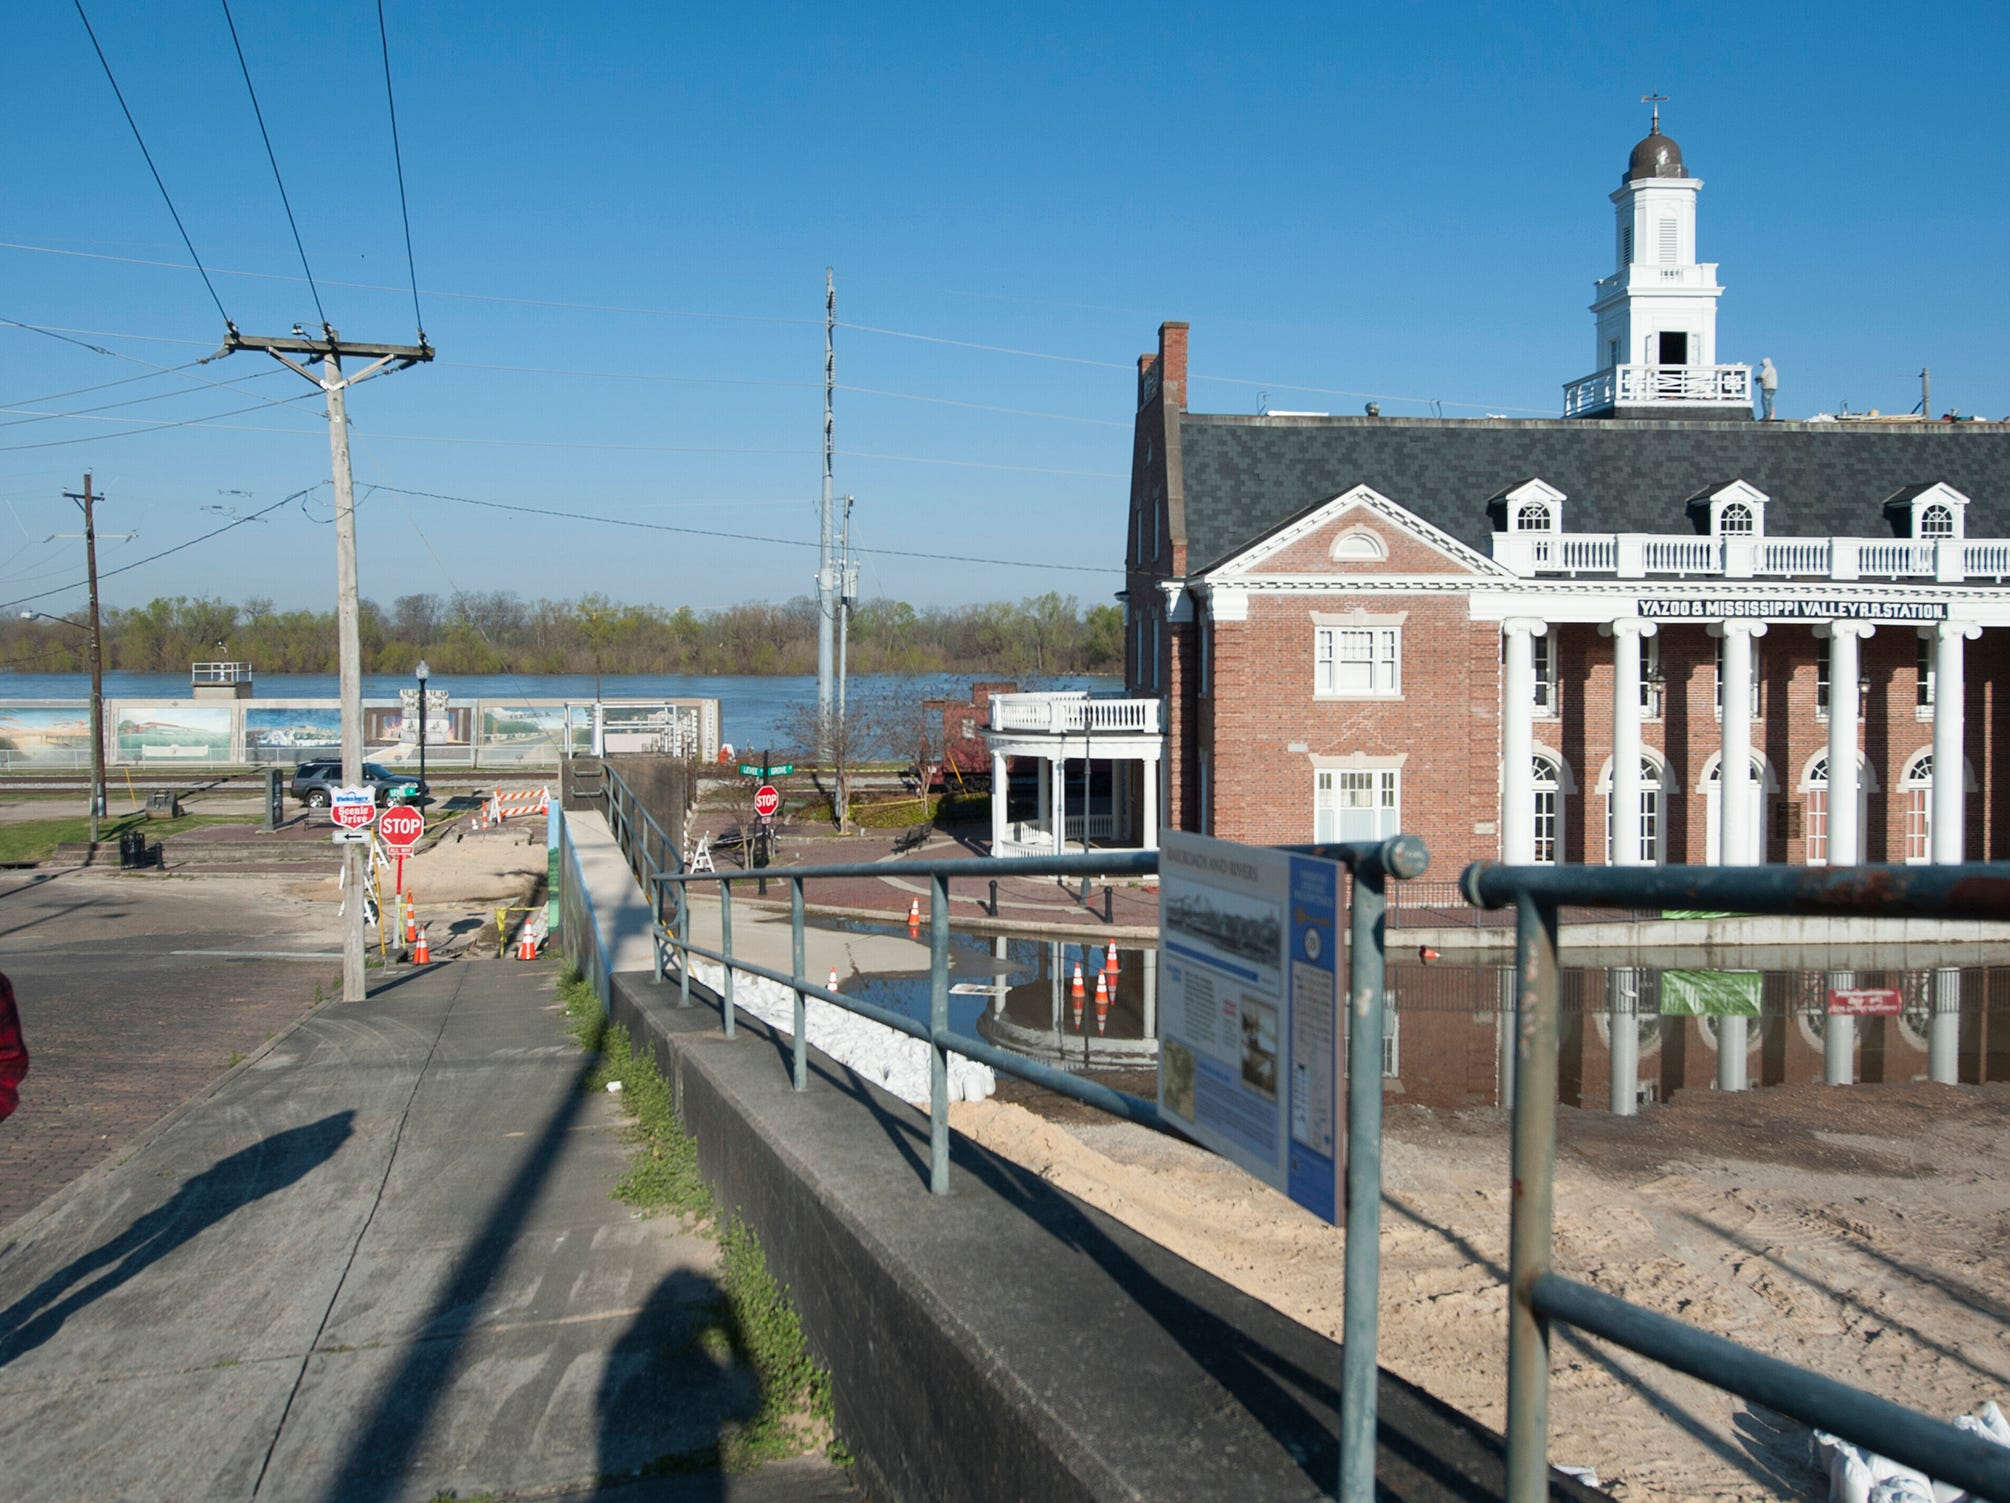 In the early morning of March 19, 2019, the high waters of the Yazoo River are visible behind the Old Depot Museum in Vicksburg. In the 2011 flood, over five feet of water got into the museum.